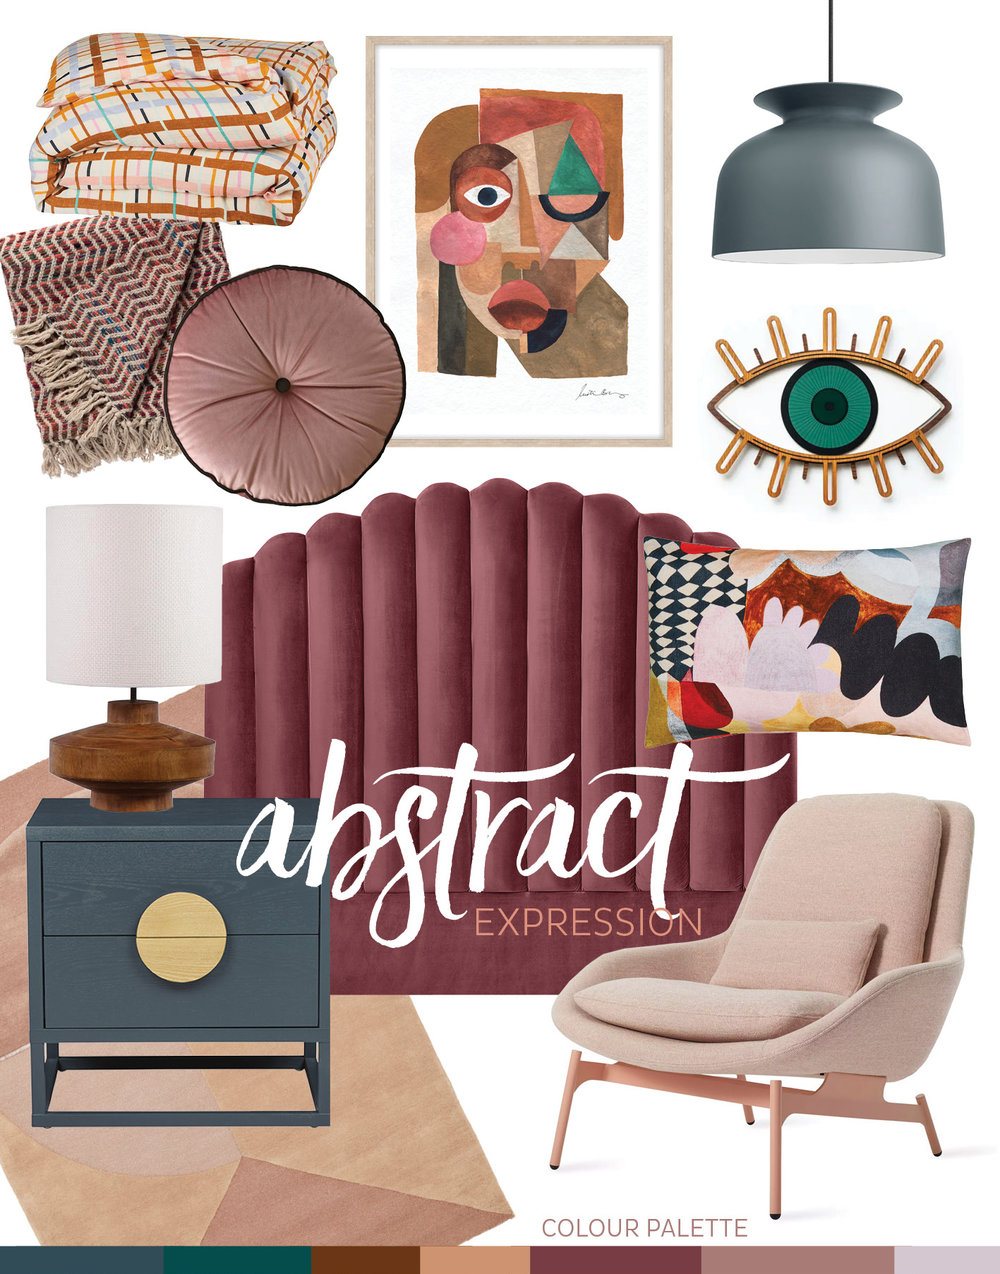 adore_blog_trend_abstract_dreaming_expression_justina_blakeney_bedroom_moodboard_sleep.jpg